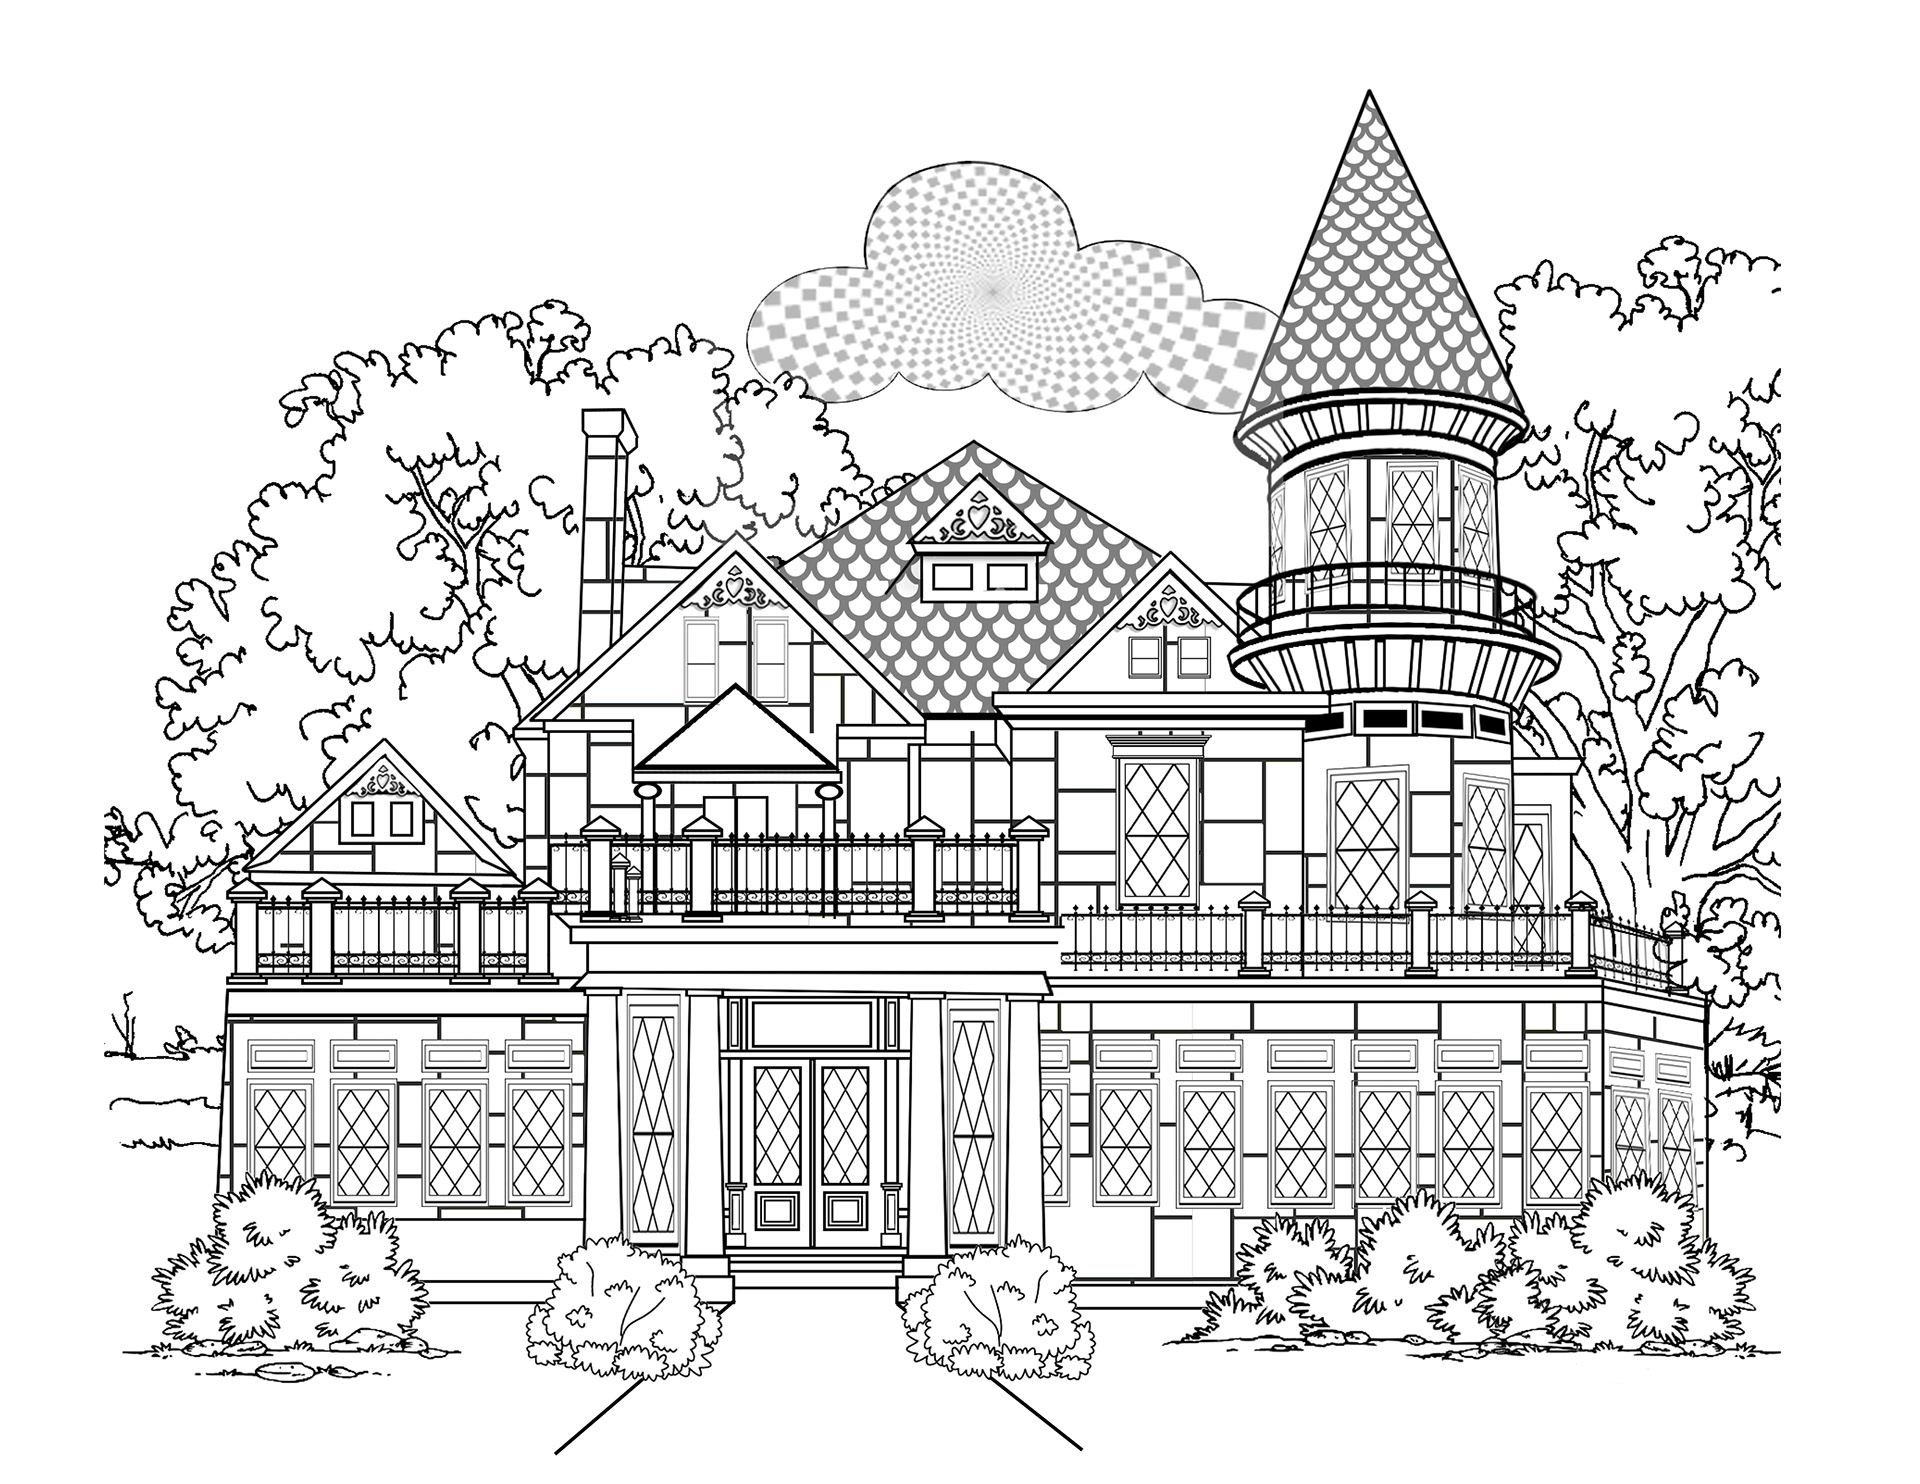 architecture coloring book pages | Janine Smith - Coloring Pages